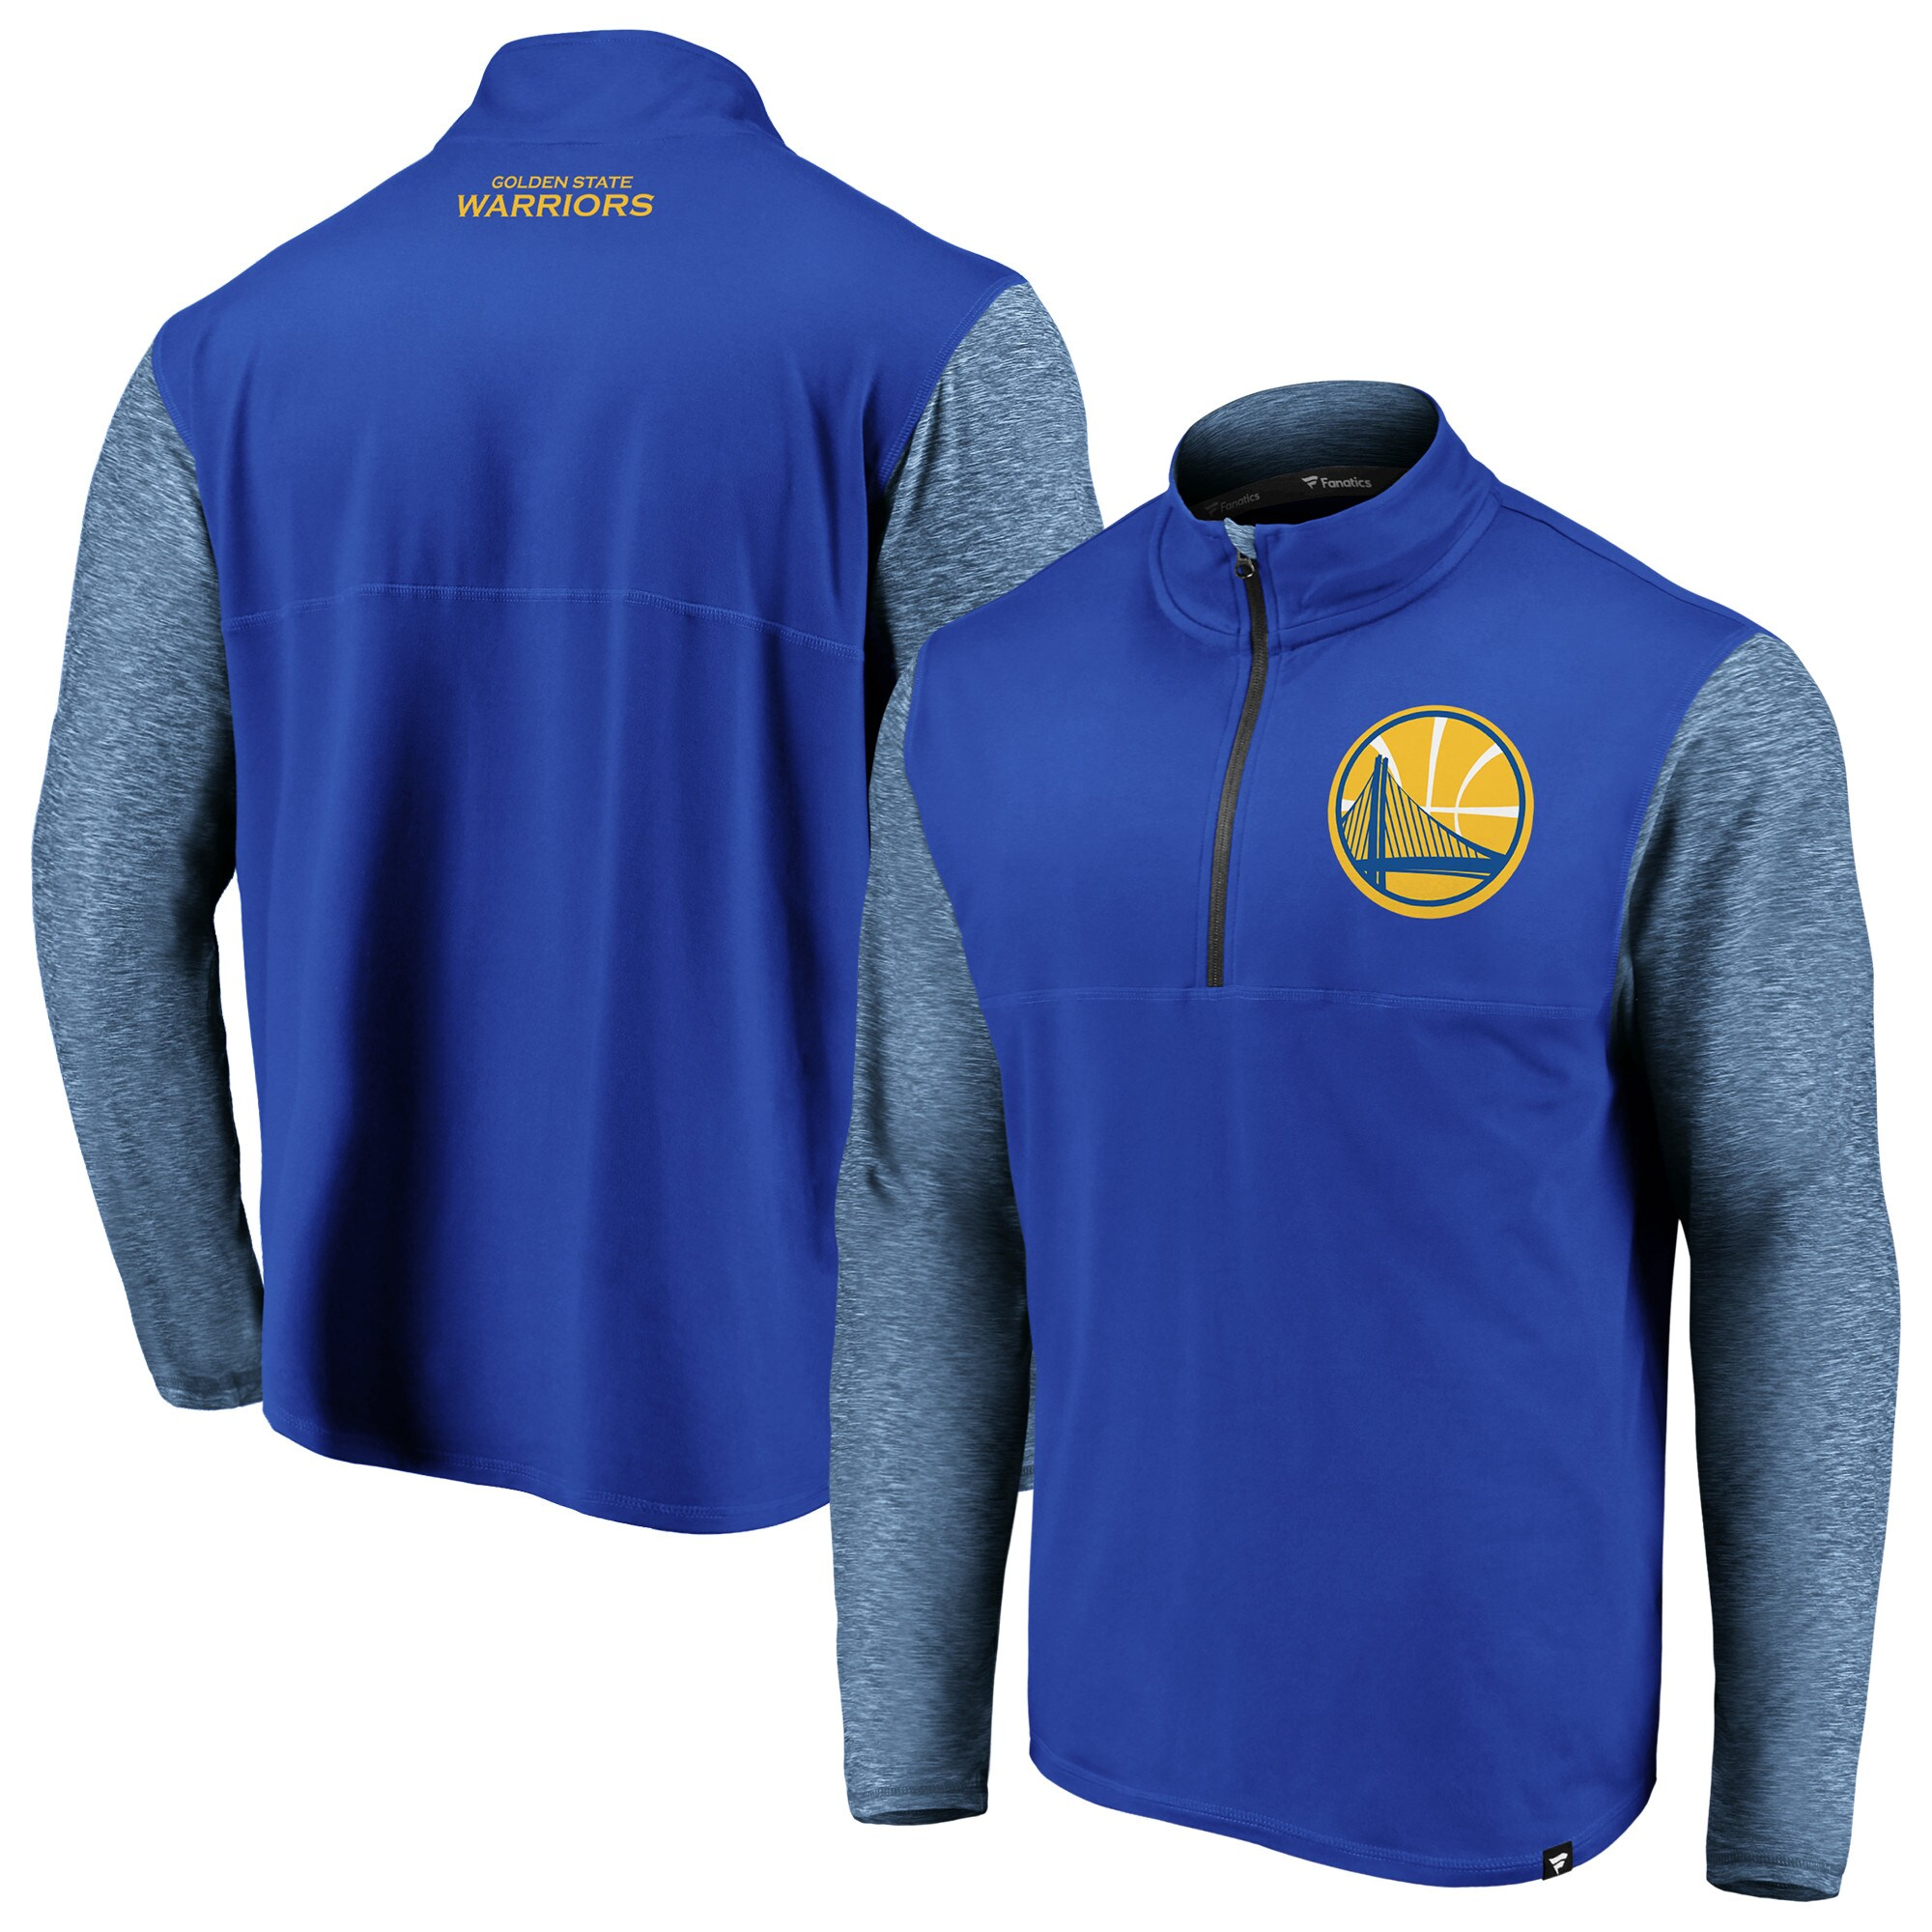 Golden State Warriors Fanatics Branded Made to Move Static Performance Quarter-Zip Pullover Jacket - Royal/Heathered Royal